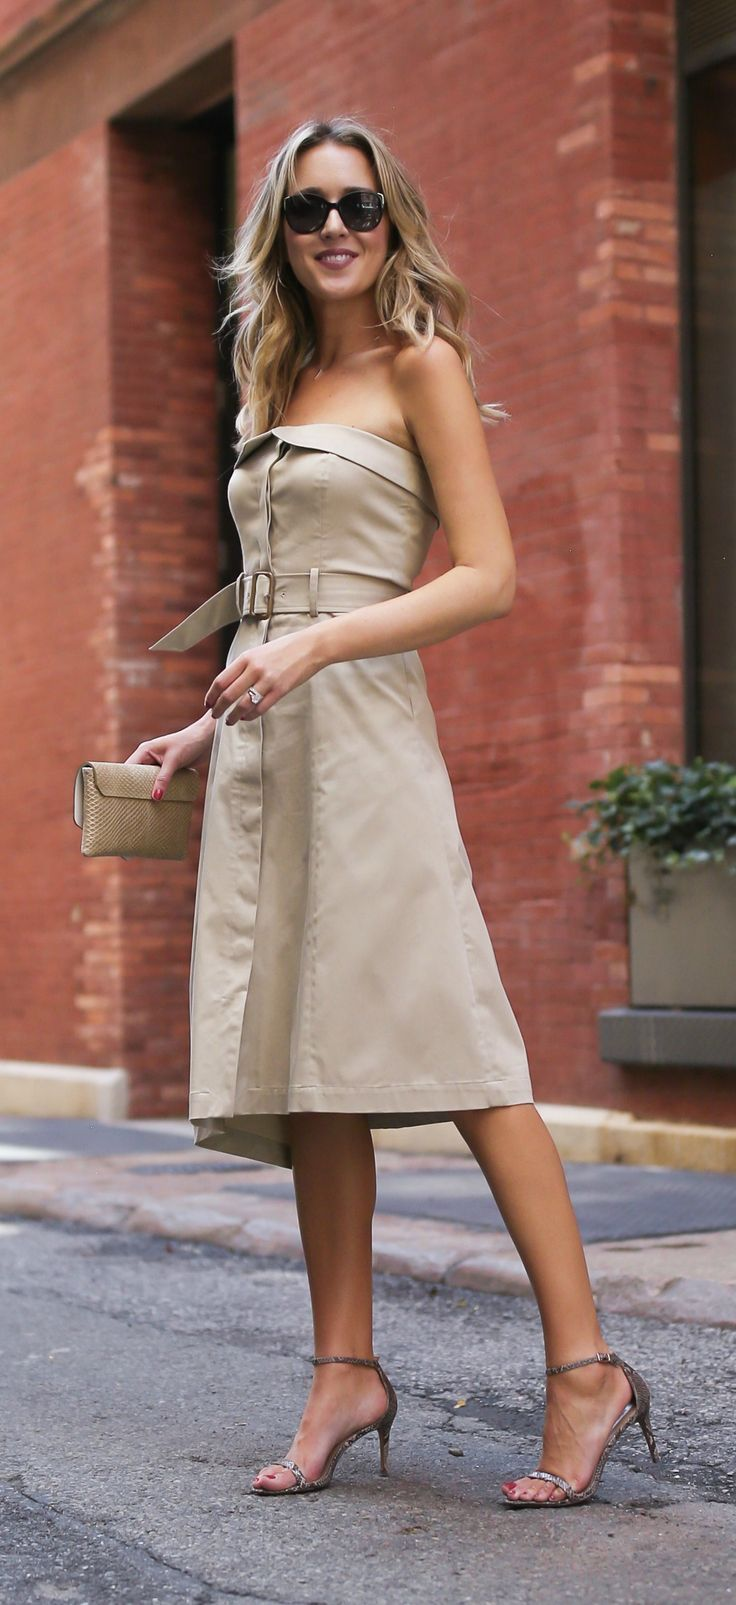 3 Day-To-Night Dresses You Need // Khaki fit and flare midi dress with asymmetrical hem + snakeskin strappy sandals, gold clutch and wavy hairstyle {Banana Republic}